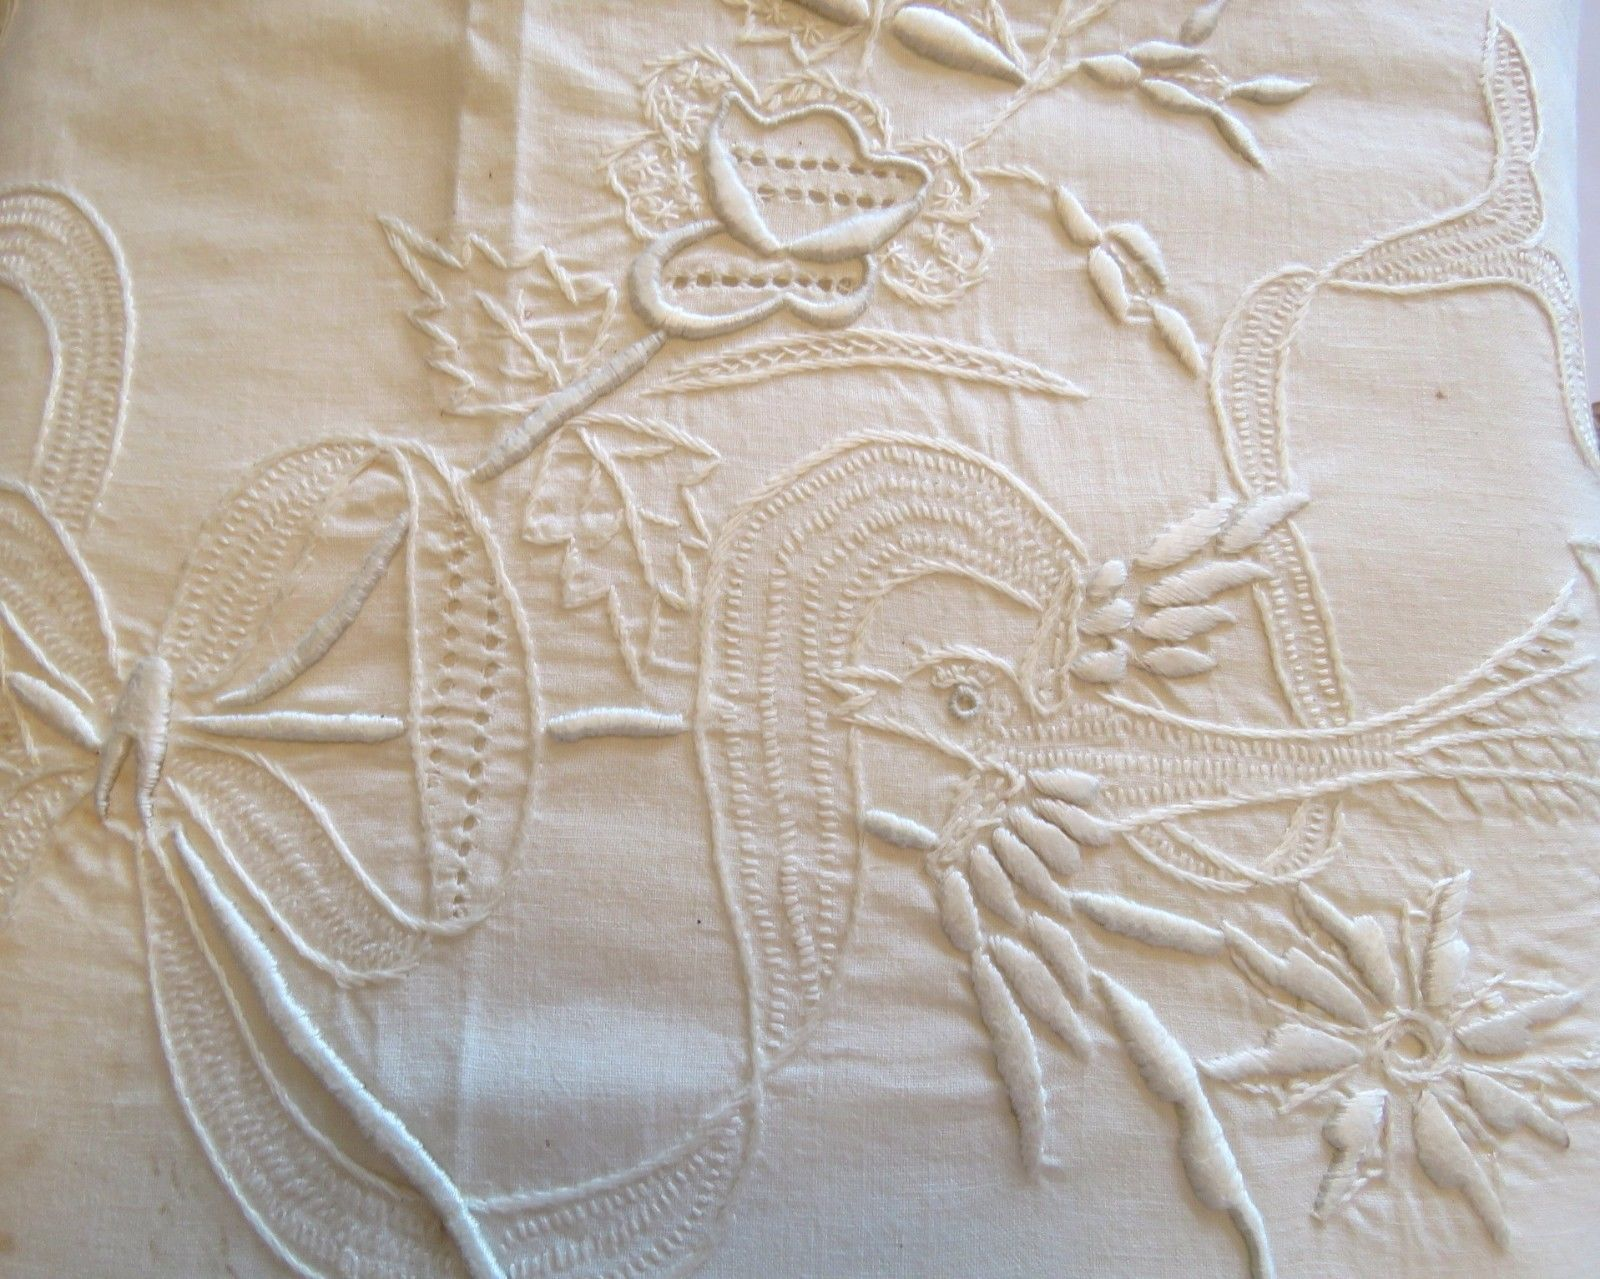 Vintage Hand Embroidered Sheet Birds Flowers Whitework Cream Cotton Bedsheet (L&T-425)